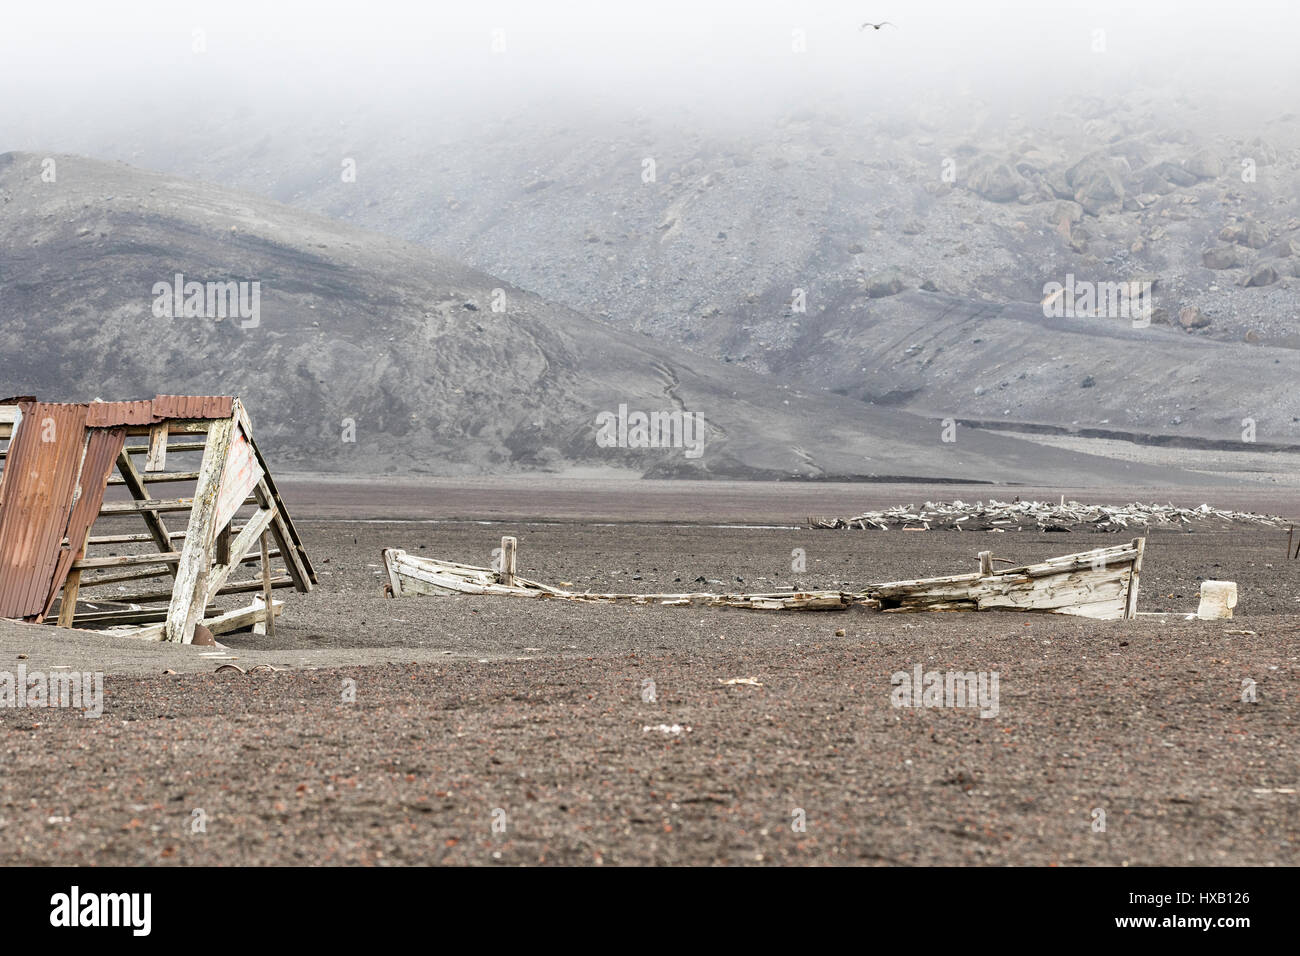 Antarctica Deception Island. Old whaling station ruins and artifacts. - Stock Image